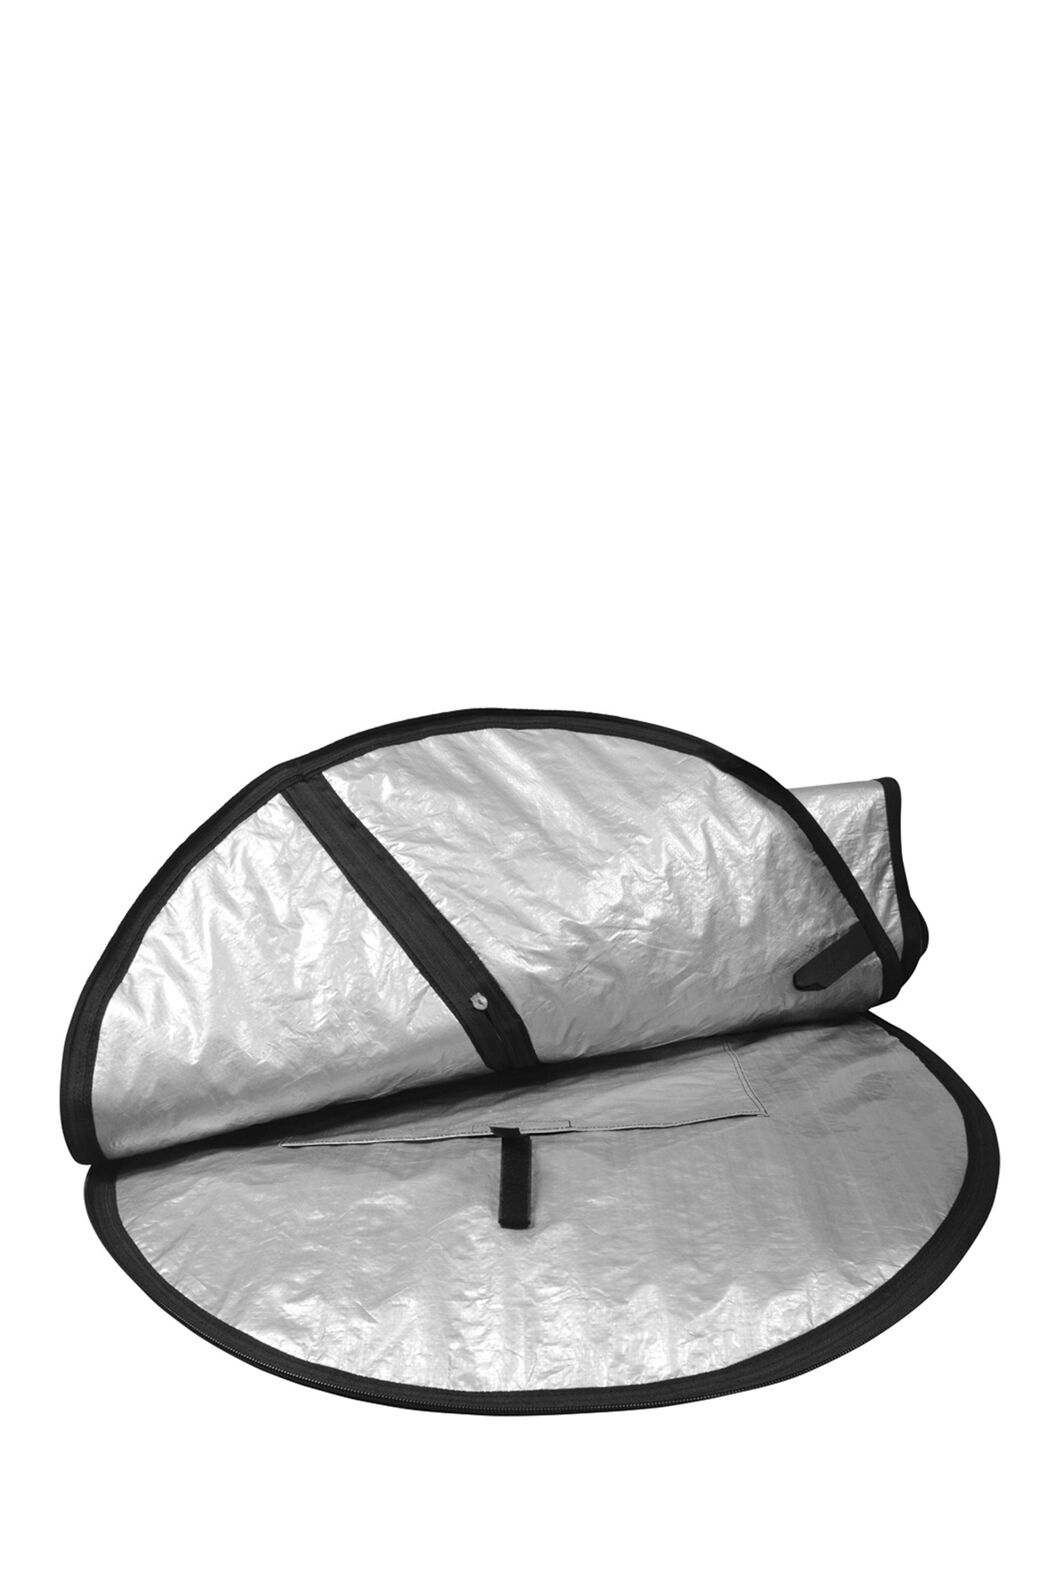 Tahwalhi SUP 10ft2in Cover, Silver, hi-res